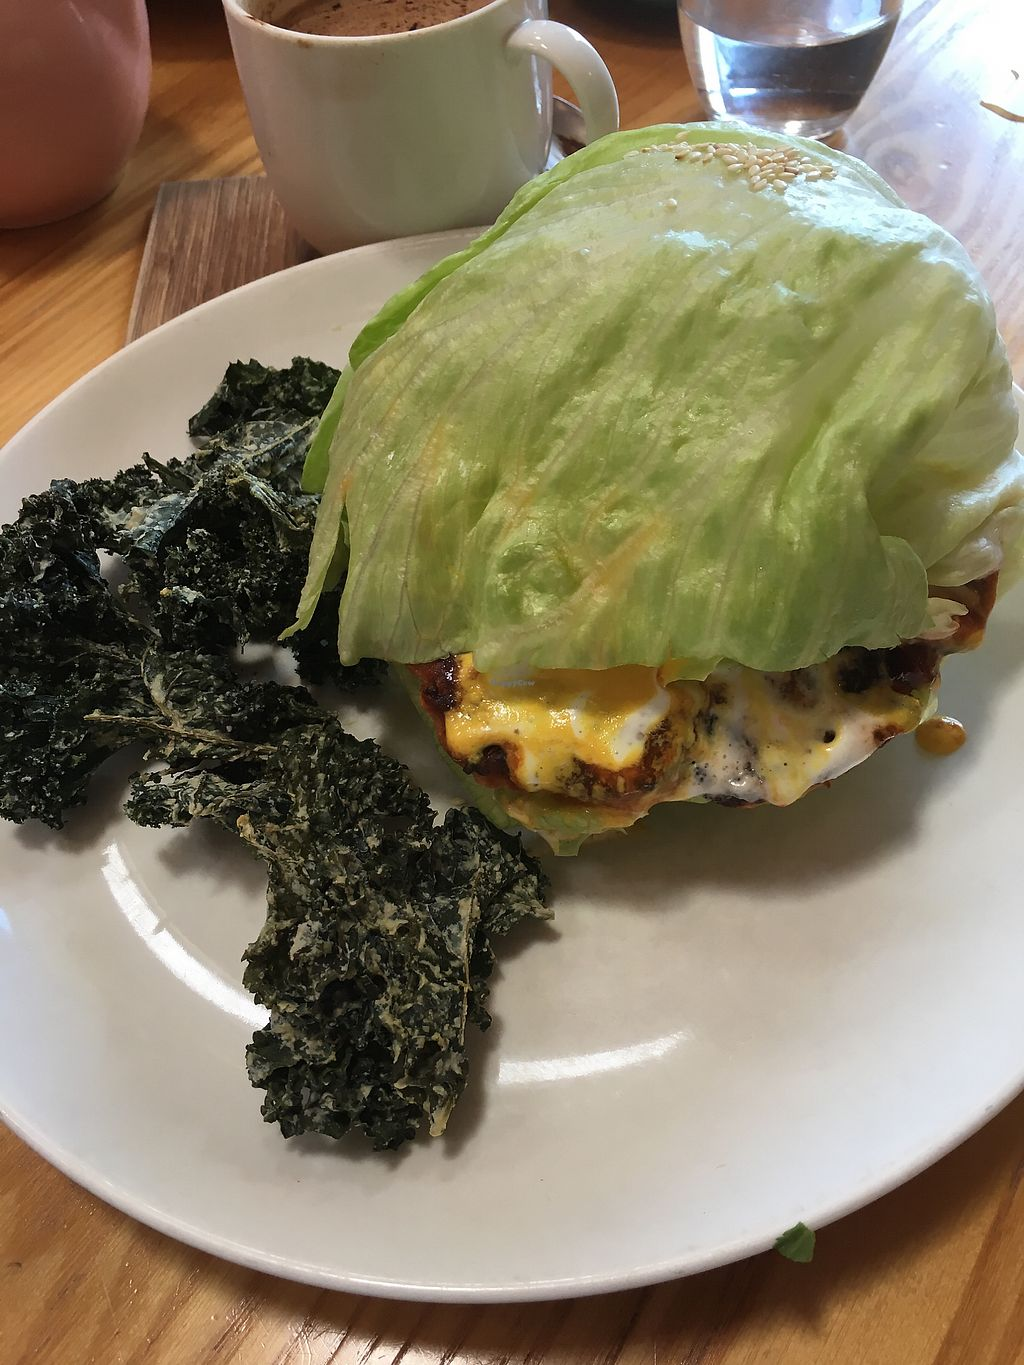 """Photo of Little Bird Organics - Ponsonby  by <a href=""""/members/profile/danielaj"""">danielaj</a> <br/>raw burger with kale chips <br/> August 1, 2017  - <a href='/contact/abuse/image/44981/287621'>Report</a>"""